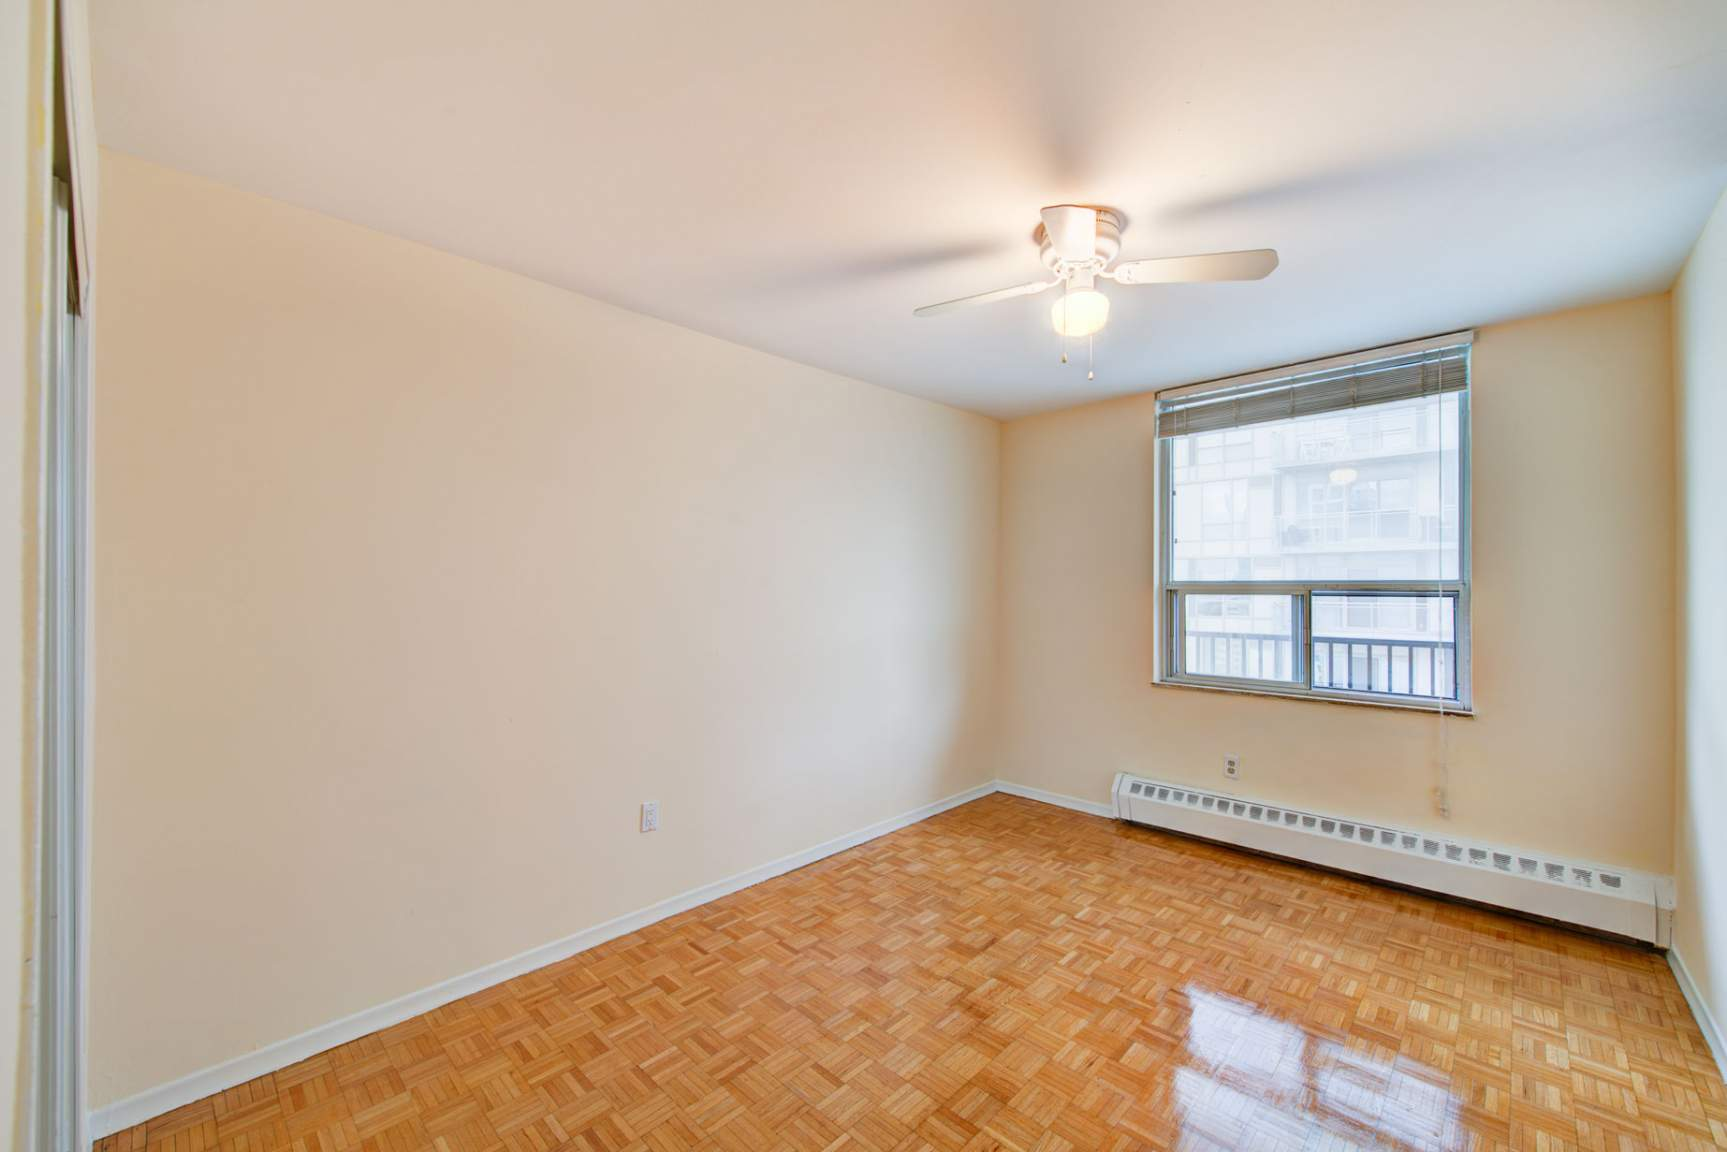 1 bedroom Apartments for rent in Toronto at Redpath Tower - Photo 14 - RentersPages – L138725